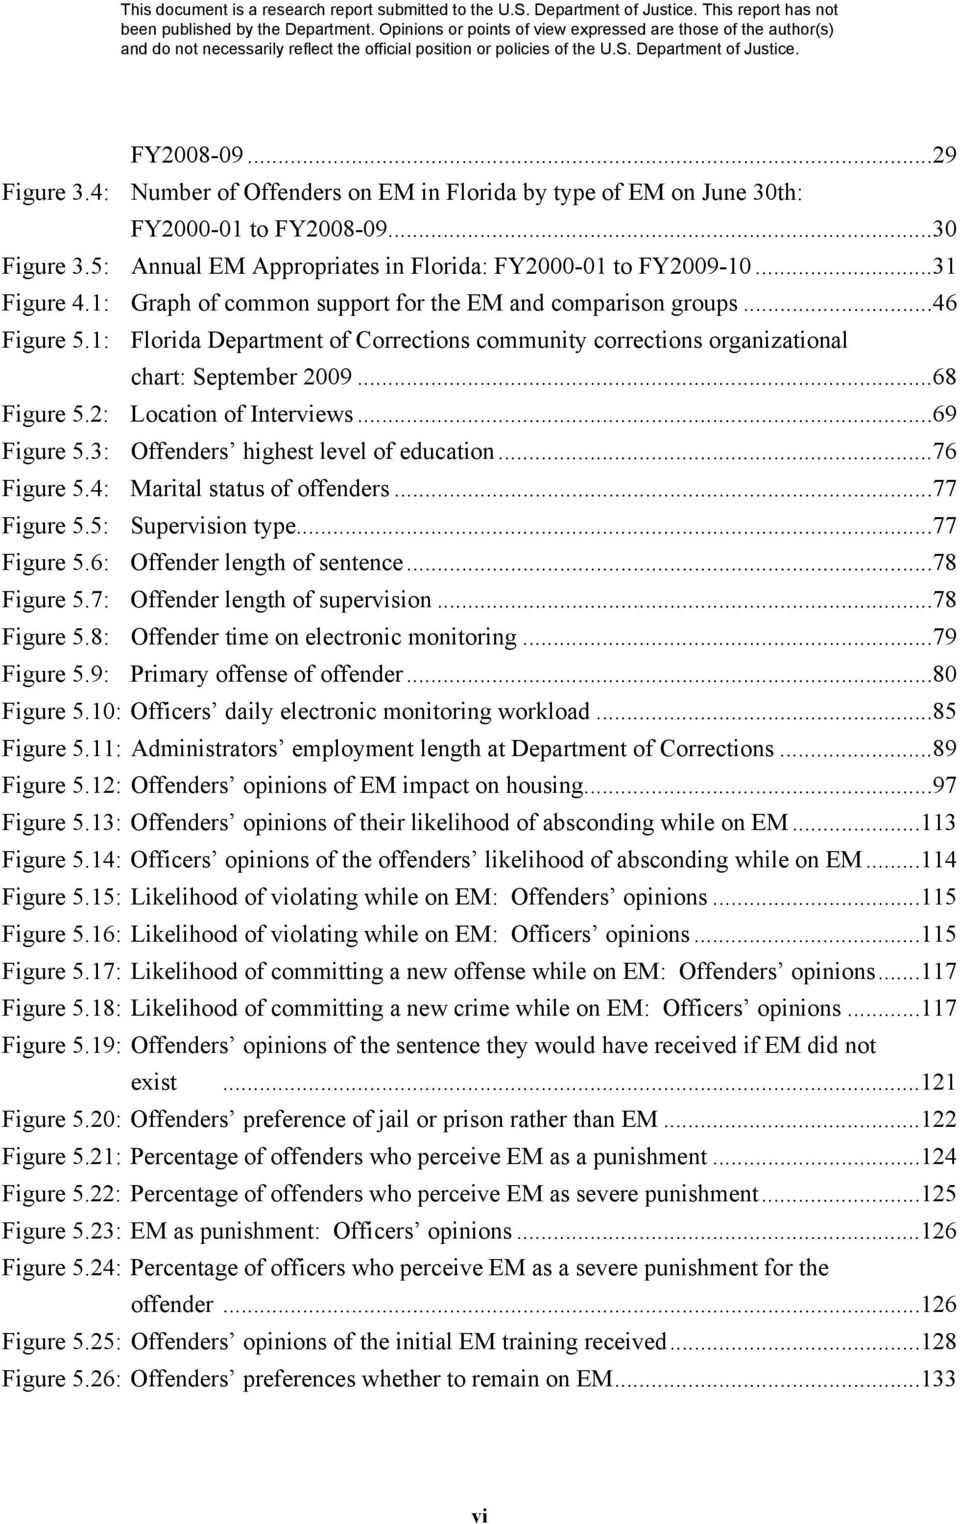 2: Location of Interviews...69 Figure 5.3: Offenders highest level of education...76 Figure 5.4: Marital status of offenders...77 Figure 5.5: Supervision type...77 Figure 5.6: Offender length of sentence.